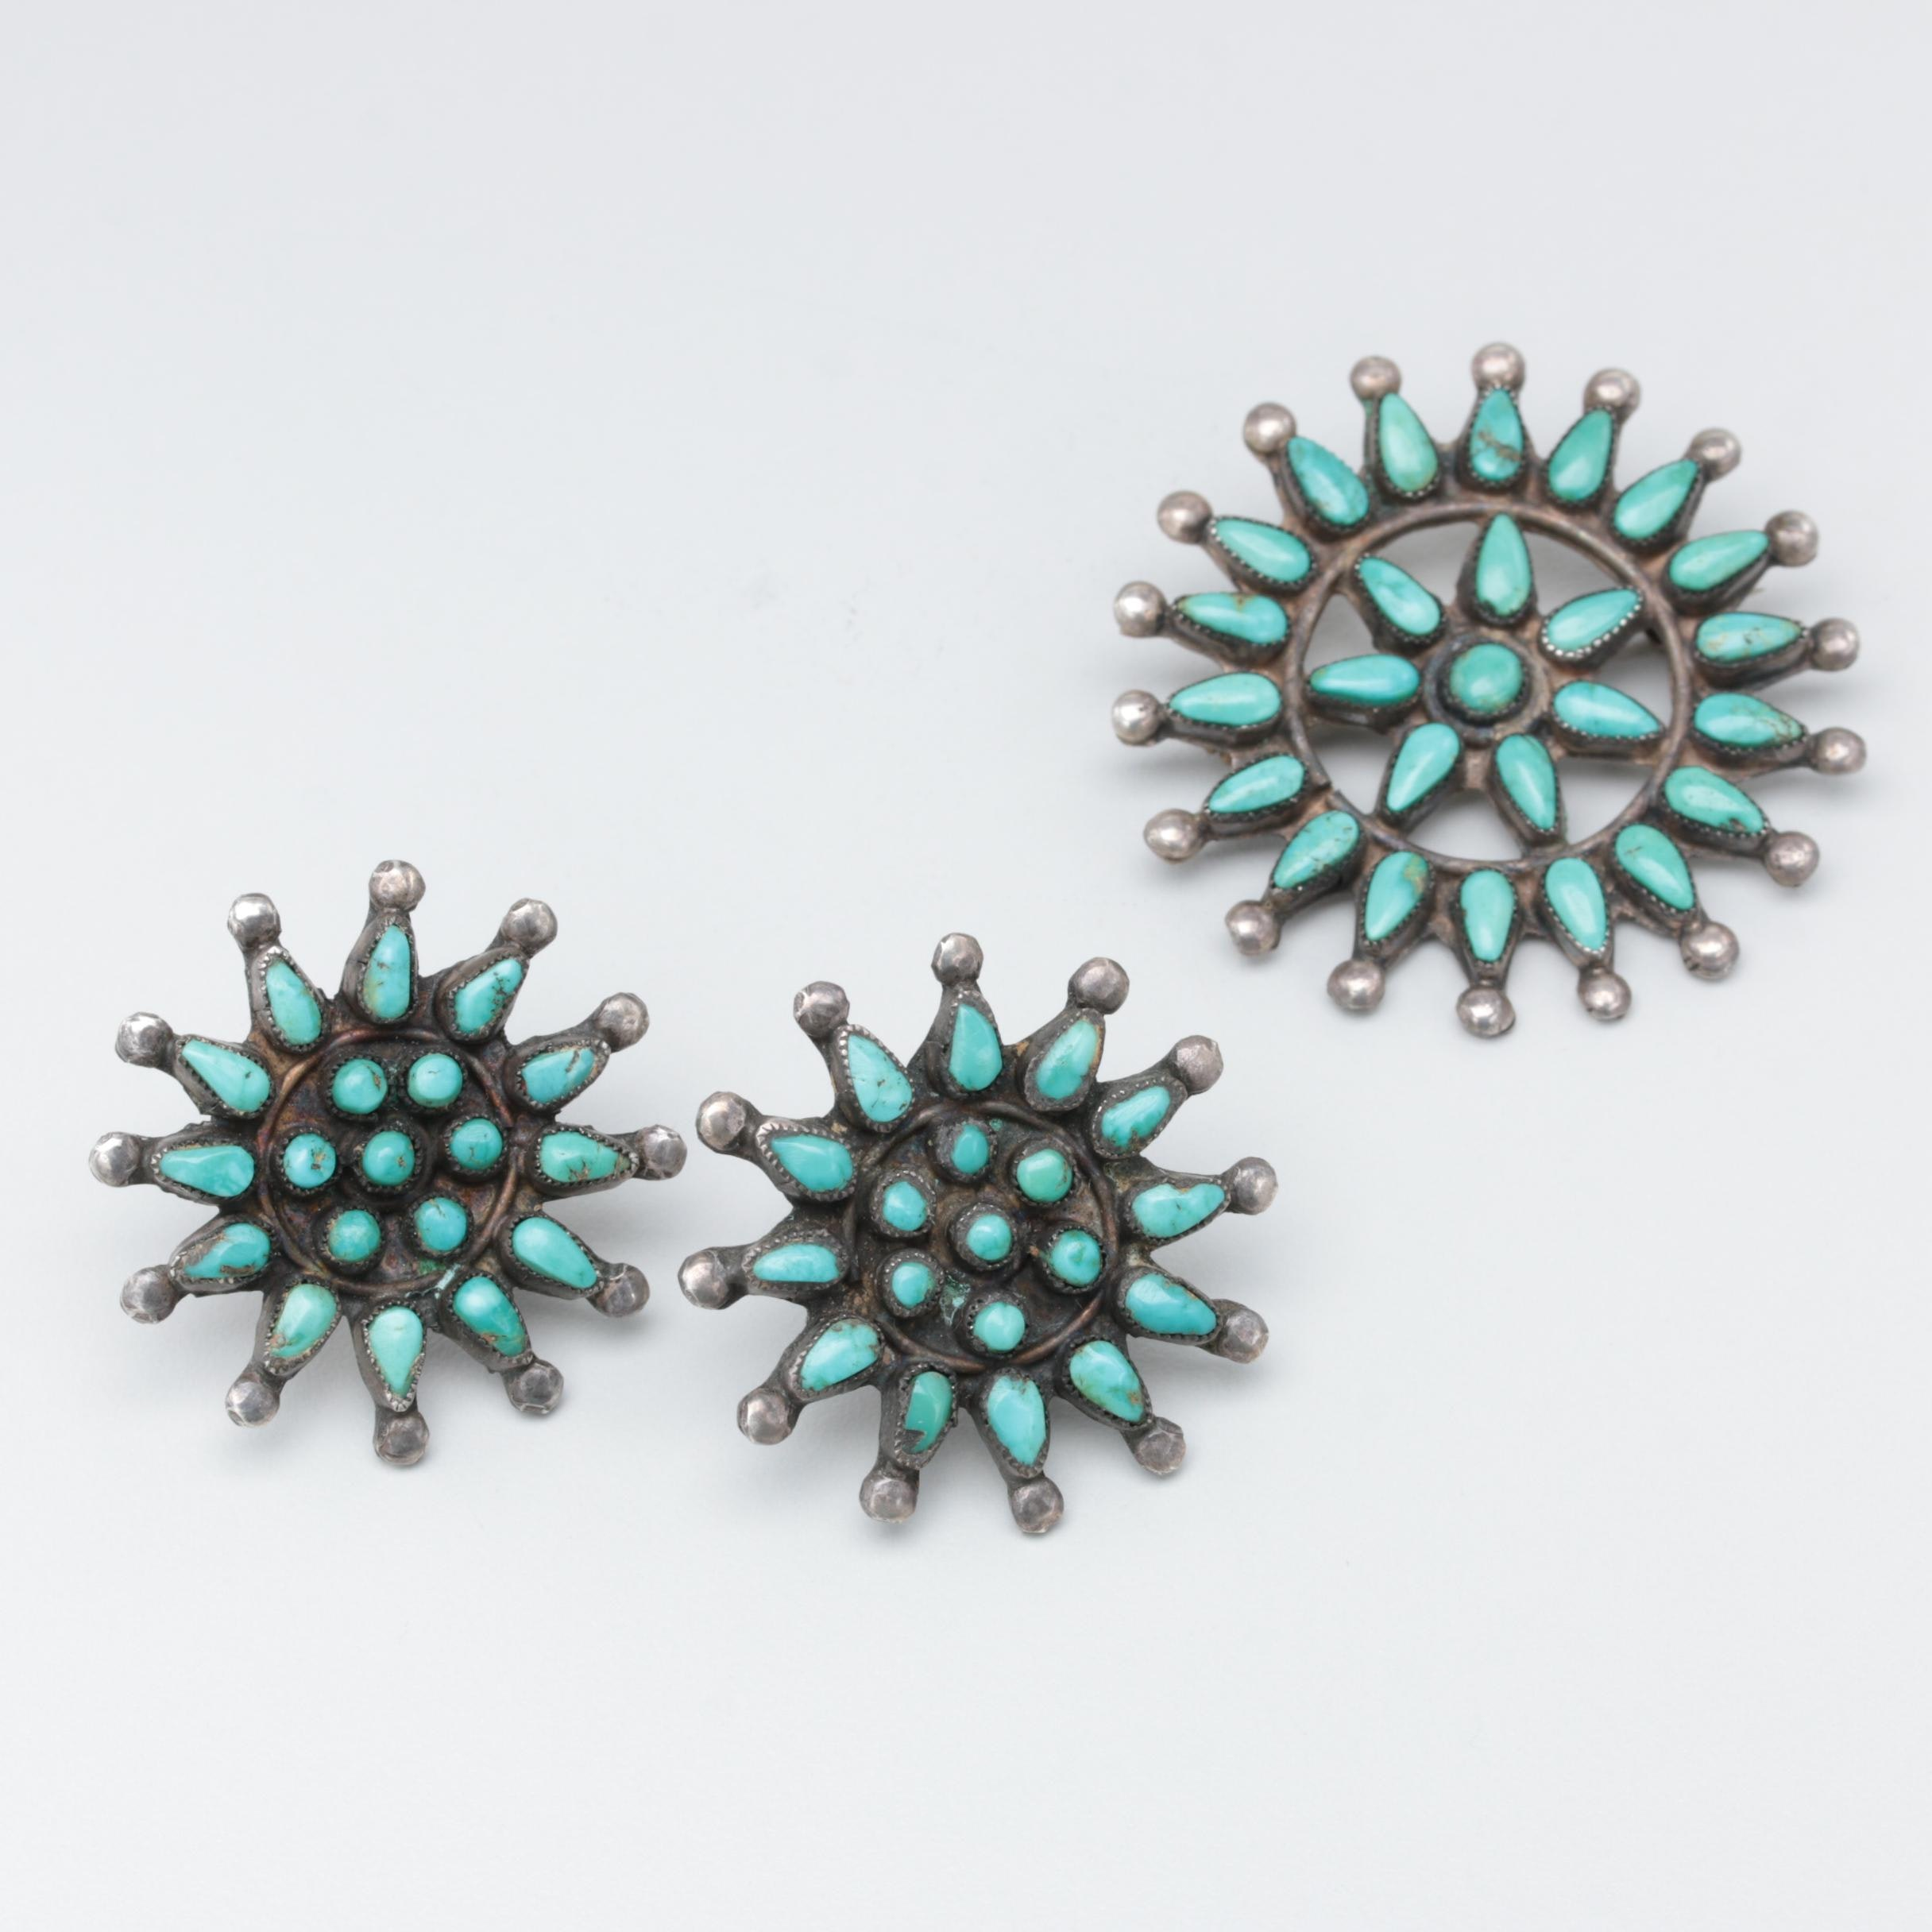 Southwestern Style Sterling Silver Turquoise Petit Point Earrings and Brooch